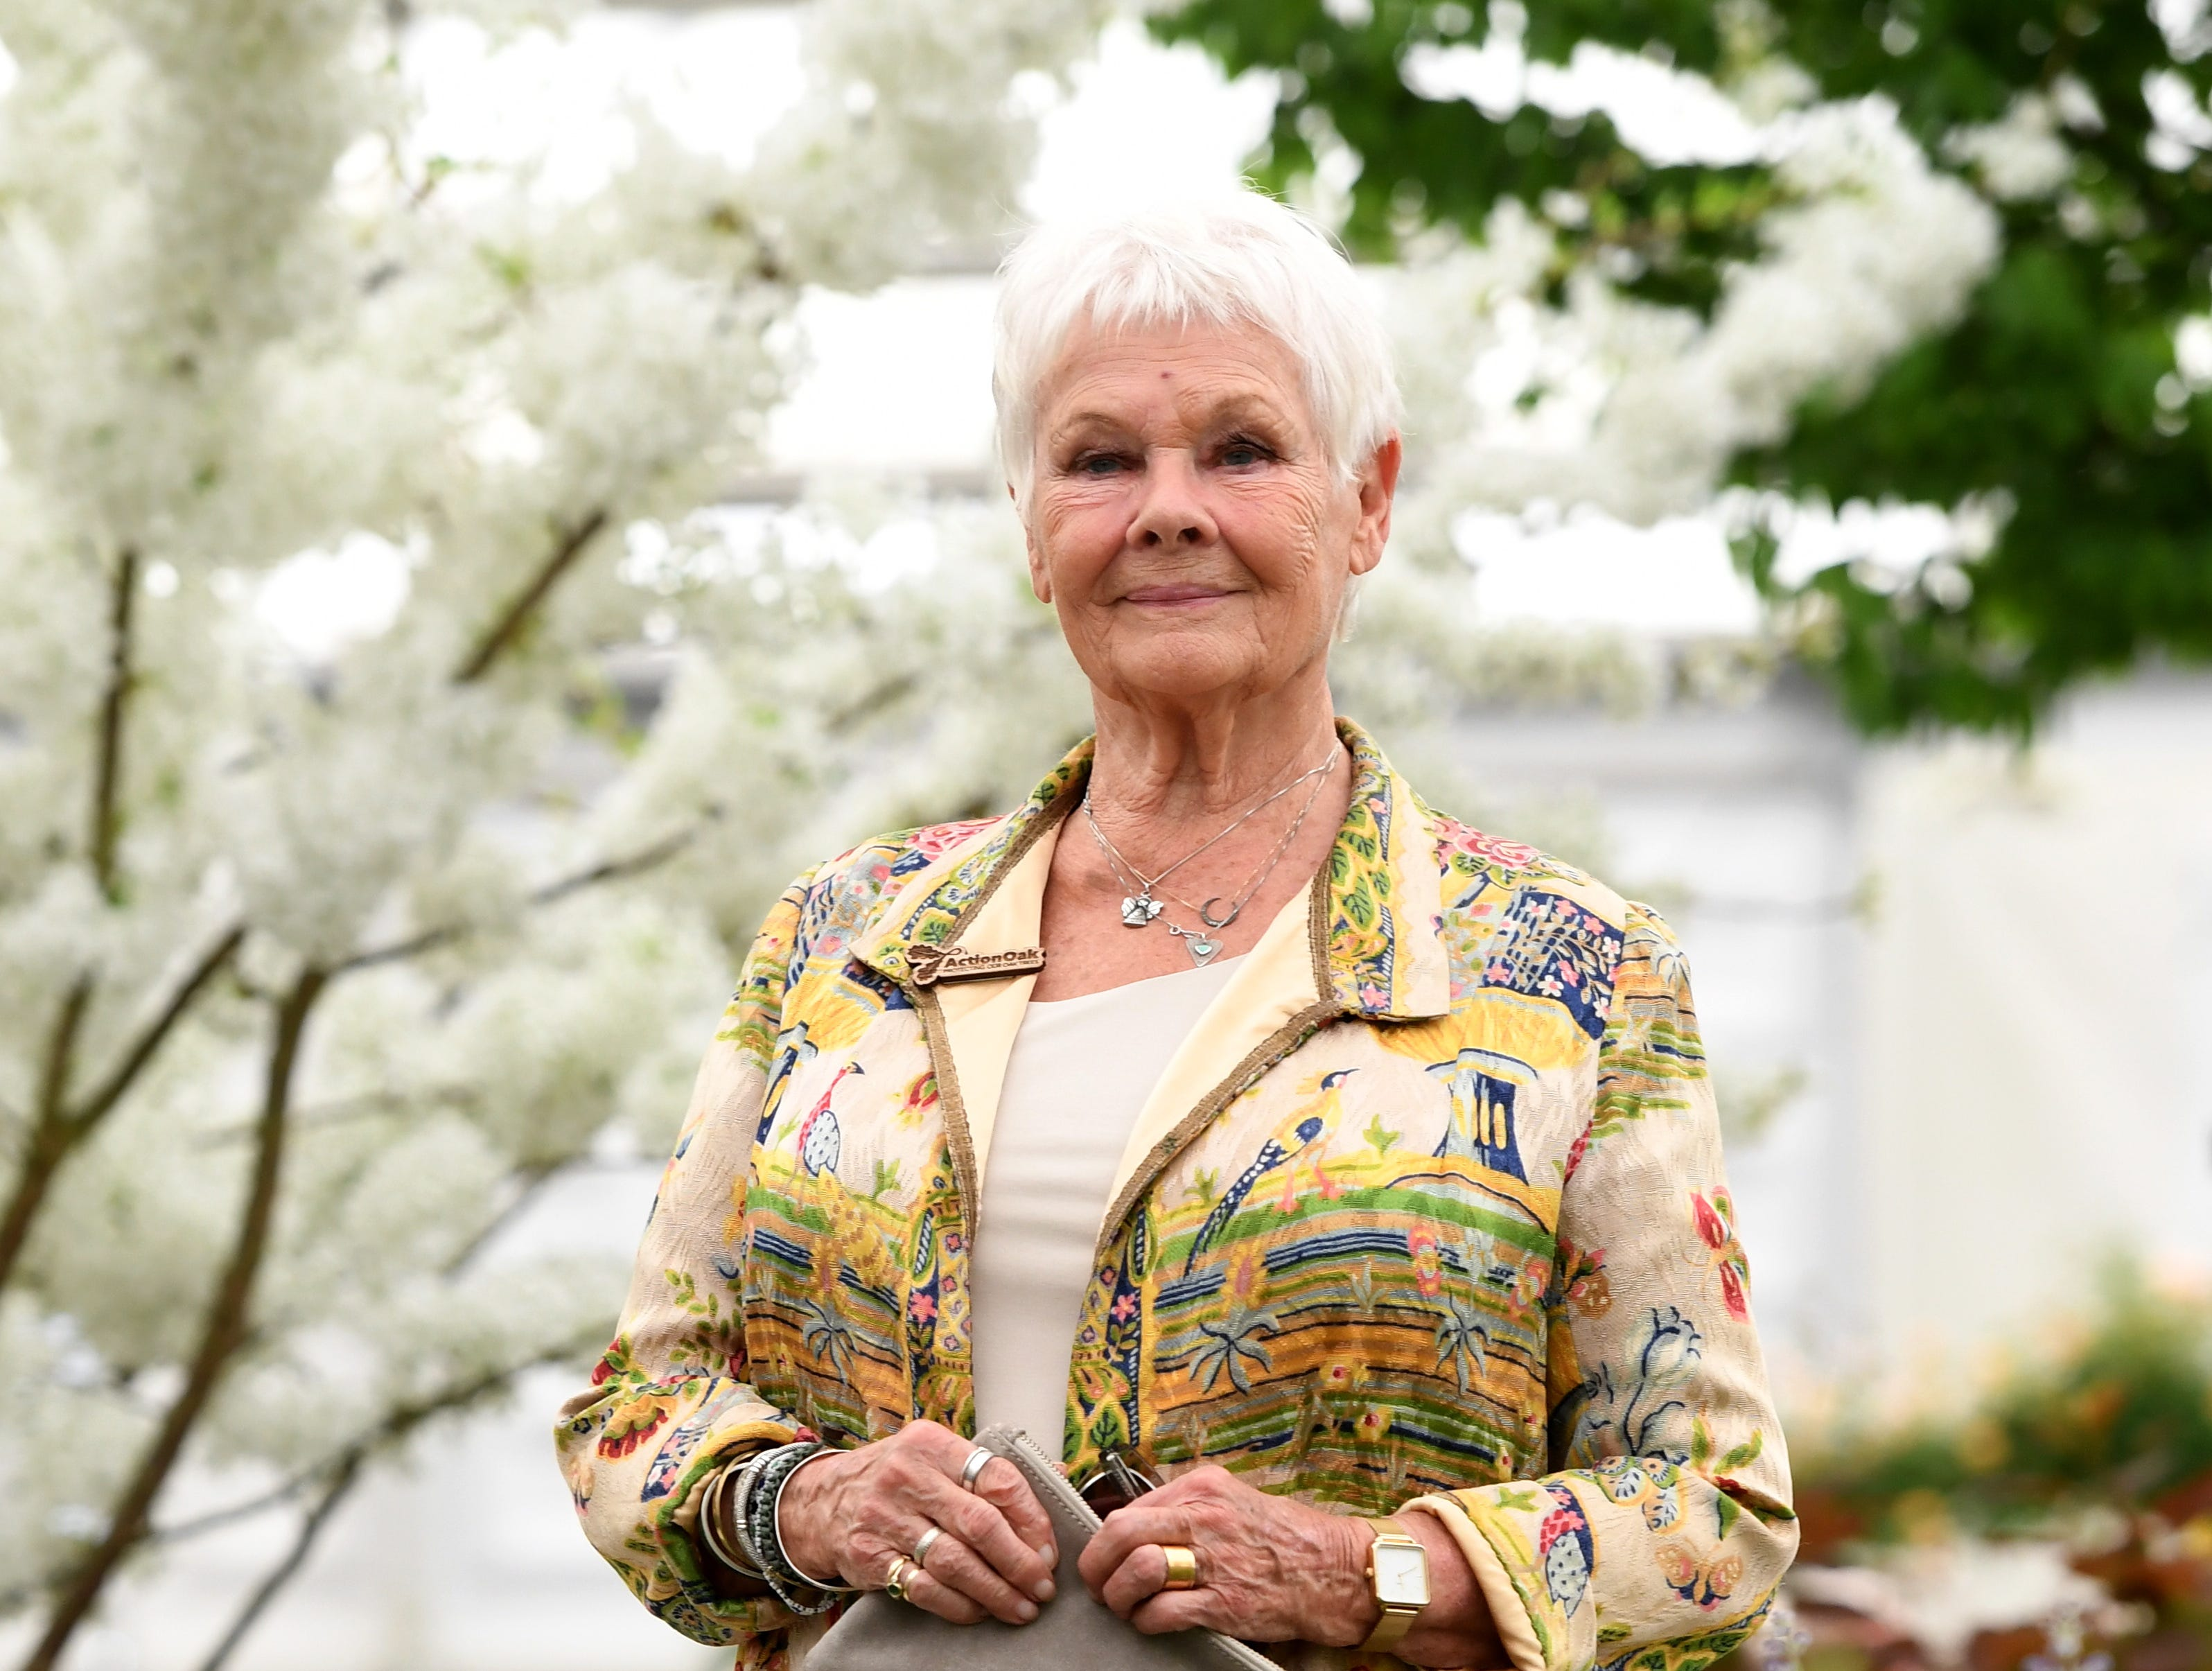 Judi Dench during the press day for the RHS Chelsea Flower Show in London. The RHS Chelsea Flower Show is a garden show held for five days by the Royal Horticultural Society in the grounds of the Royal Hospital Chelsea. It has been held since 1912 and runs this year from May 21-25.